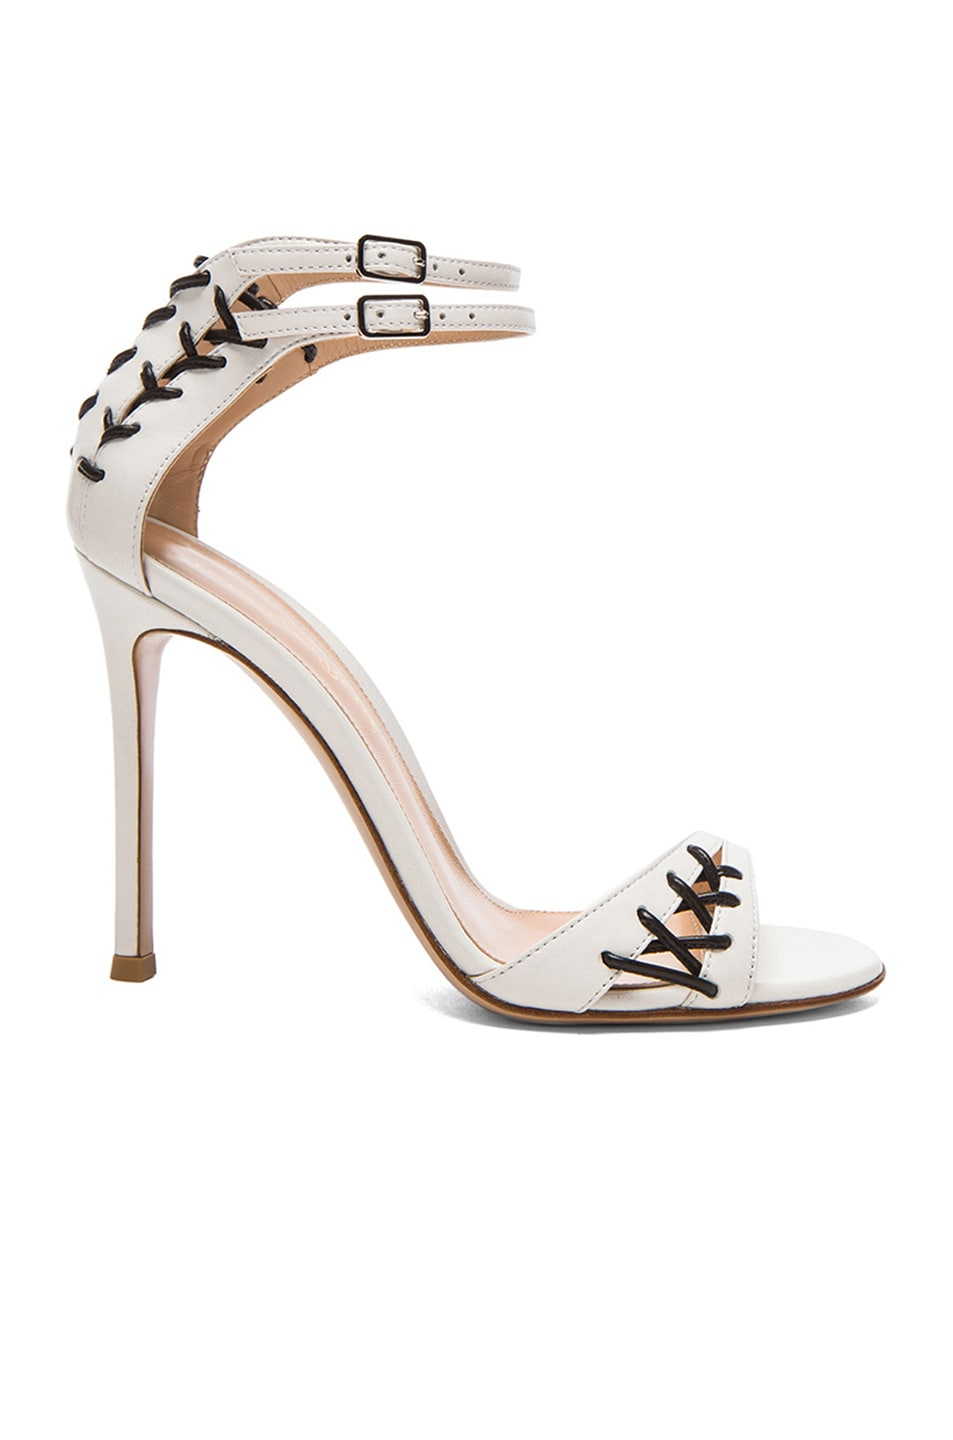 Image 1 of Gianvito Rossi Stitched Ankle Strap Leather Heels in Off White & Nero